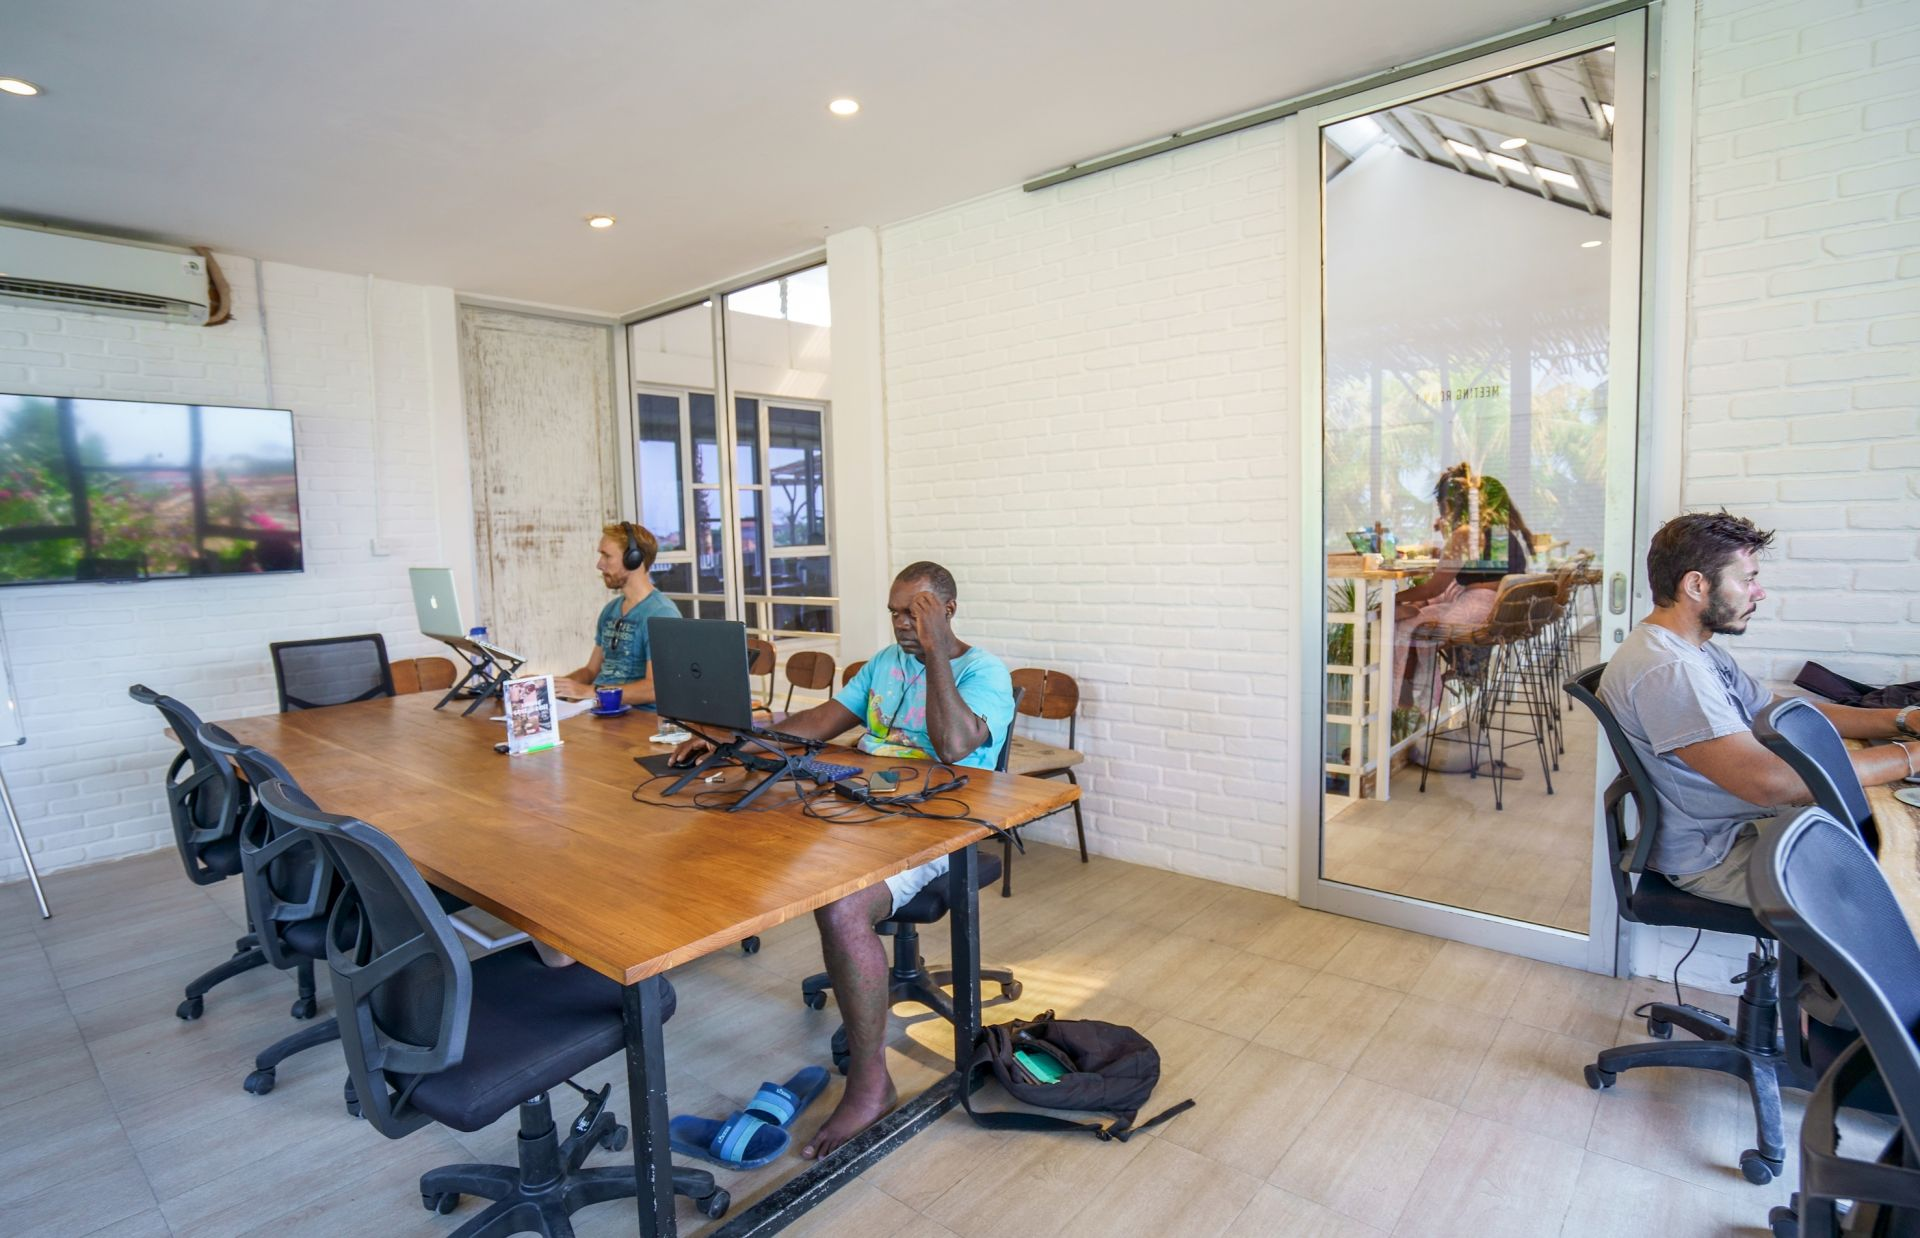 Tropical Nomad Coworking Space, Bali